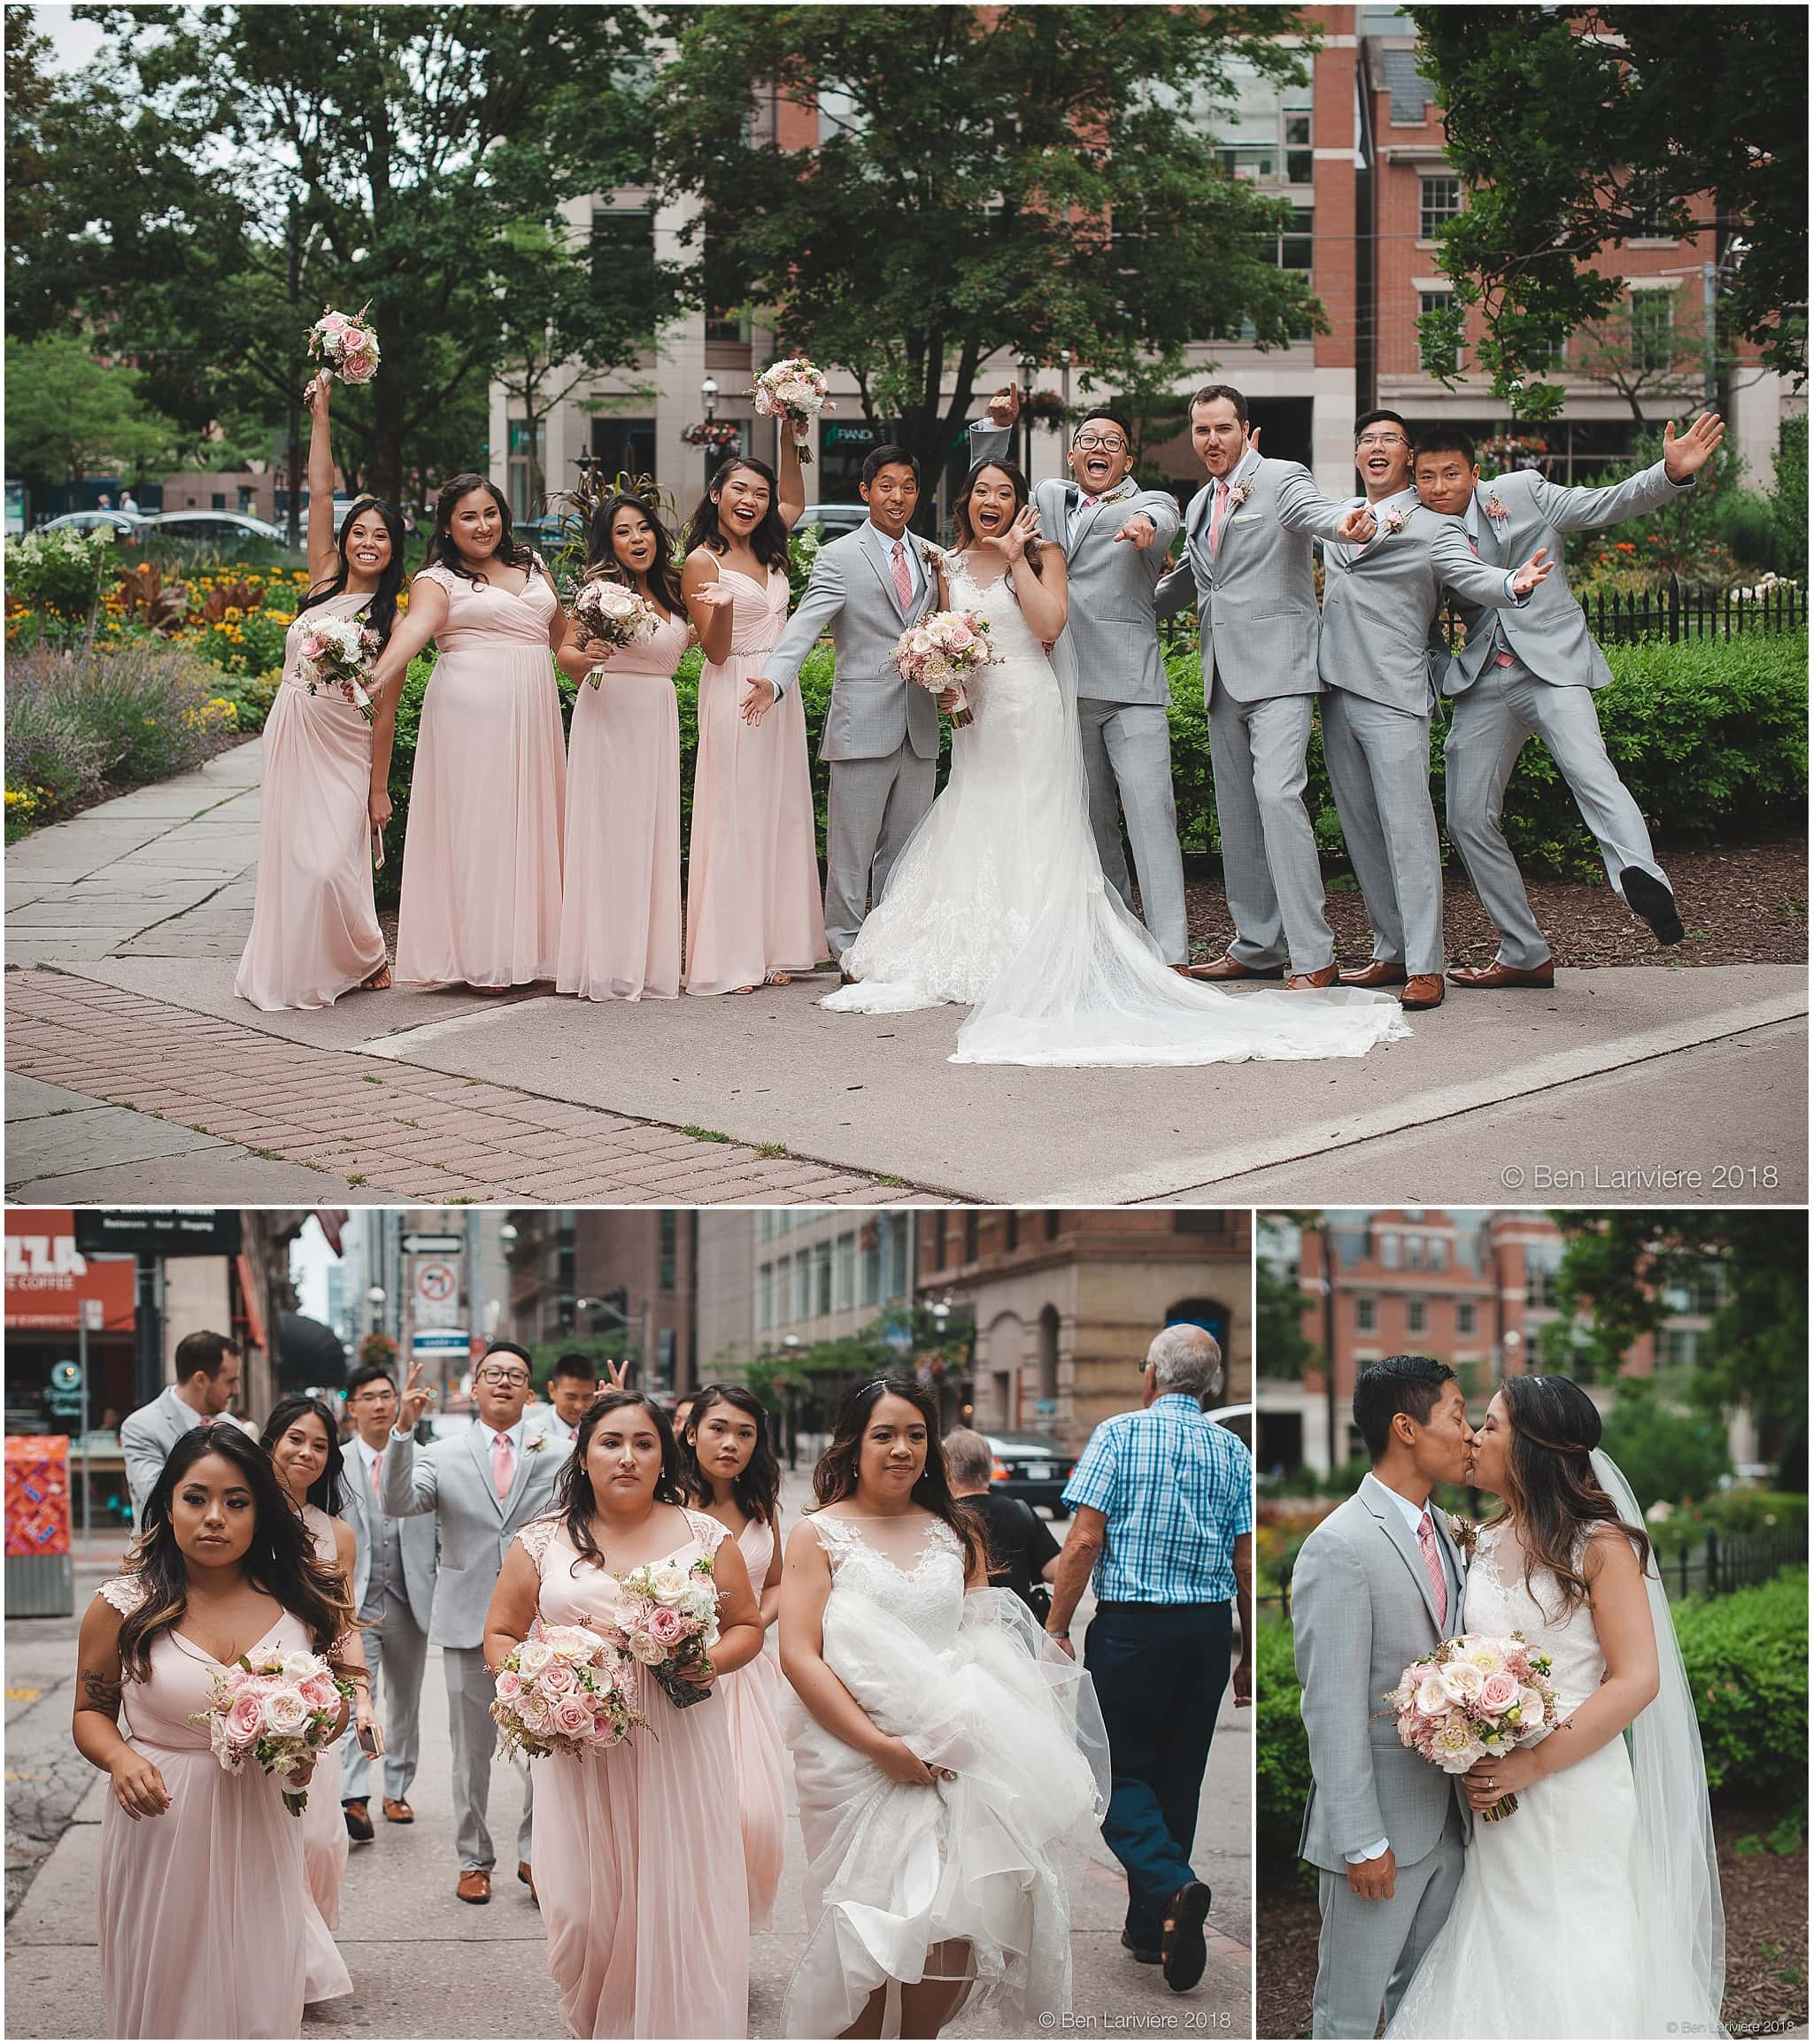 wedding party and bride and groom wedding photos at st. james park king street toronto